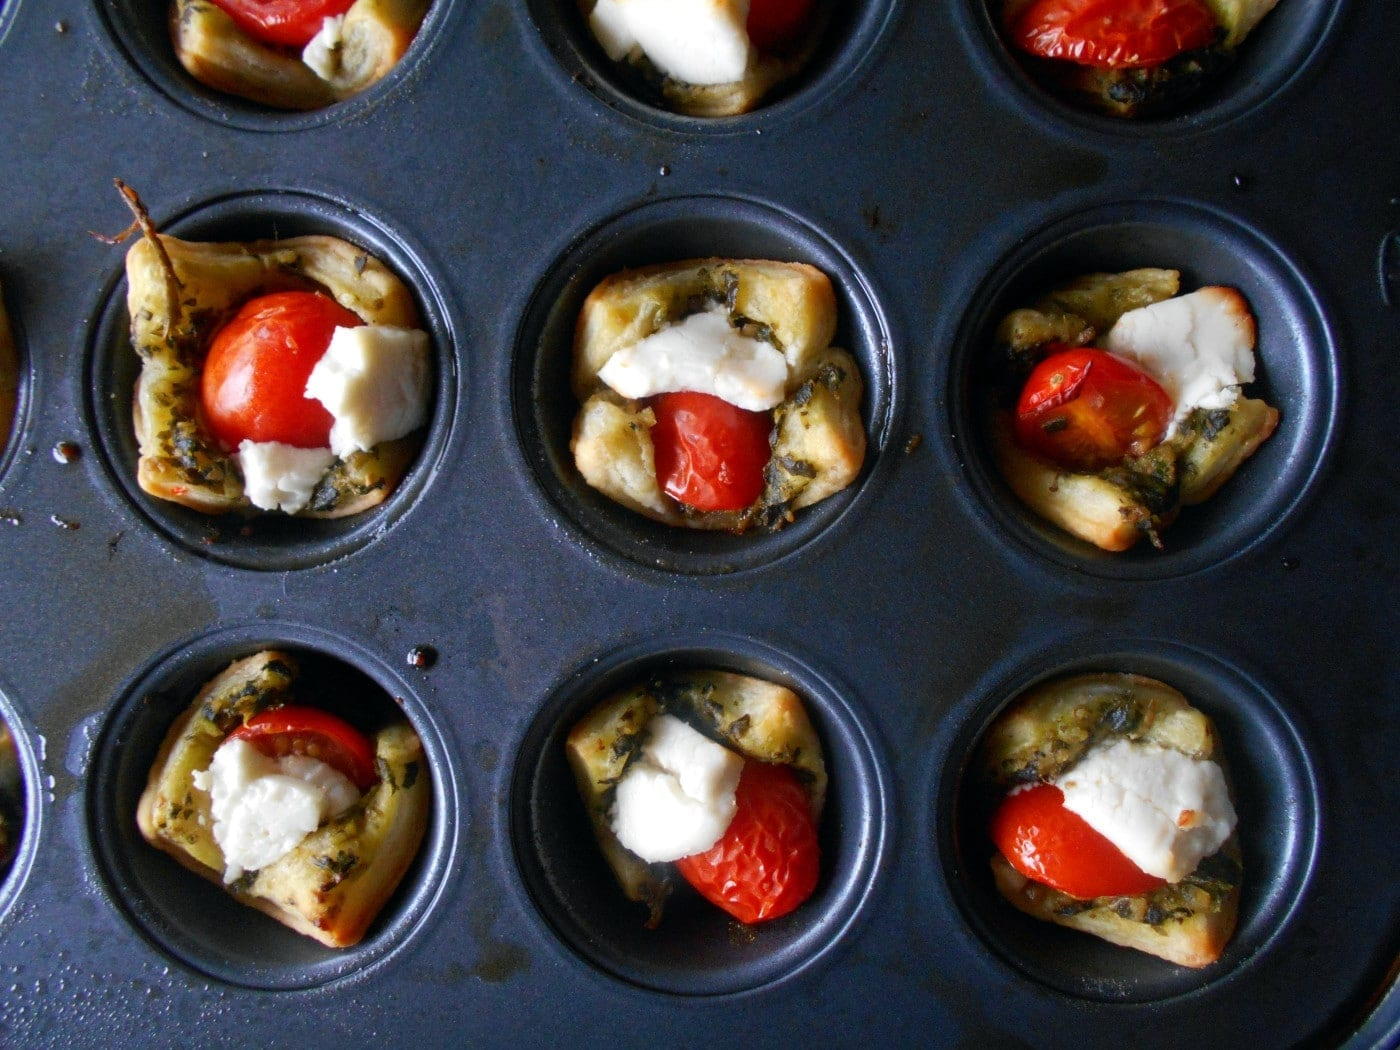 Caprese Puff Pastry Bites. Perfect bite-sized appetizers for any occasion. The Pesto acts as a base. Top with a balsamic vinaigrette reduction sauce. Quick and easy recipe